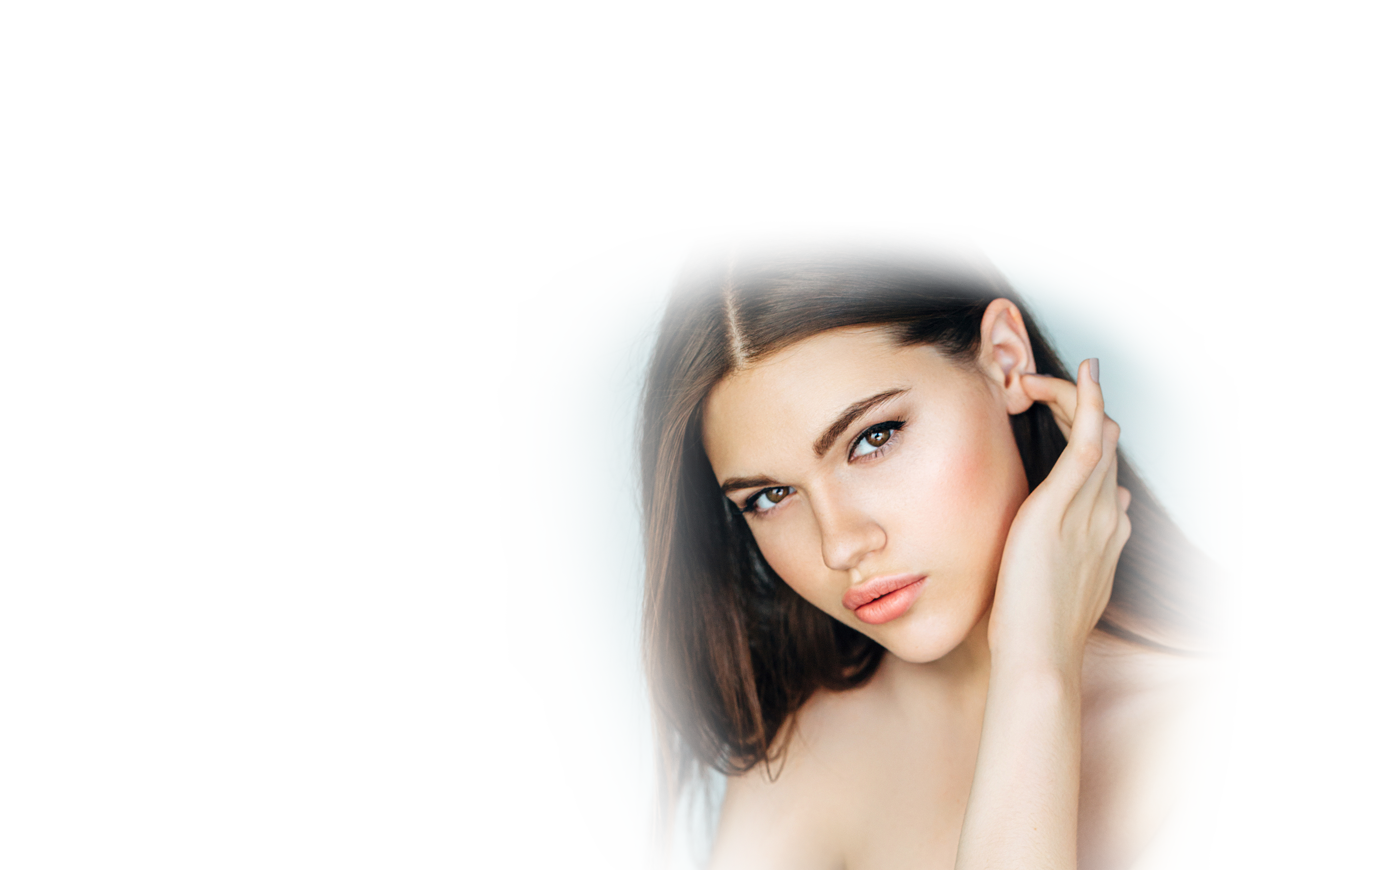 Ultrasonic Facials model